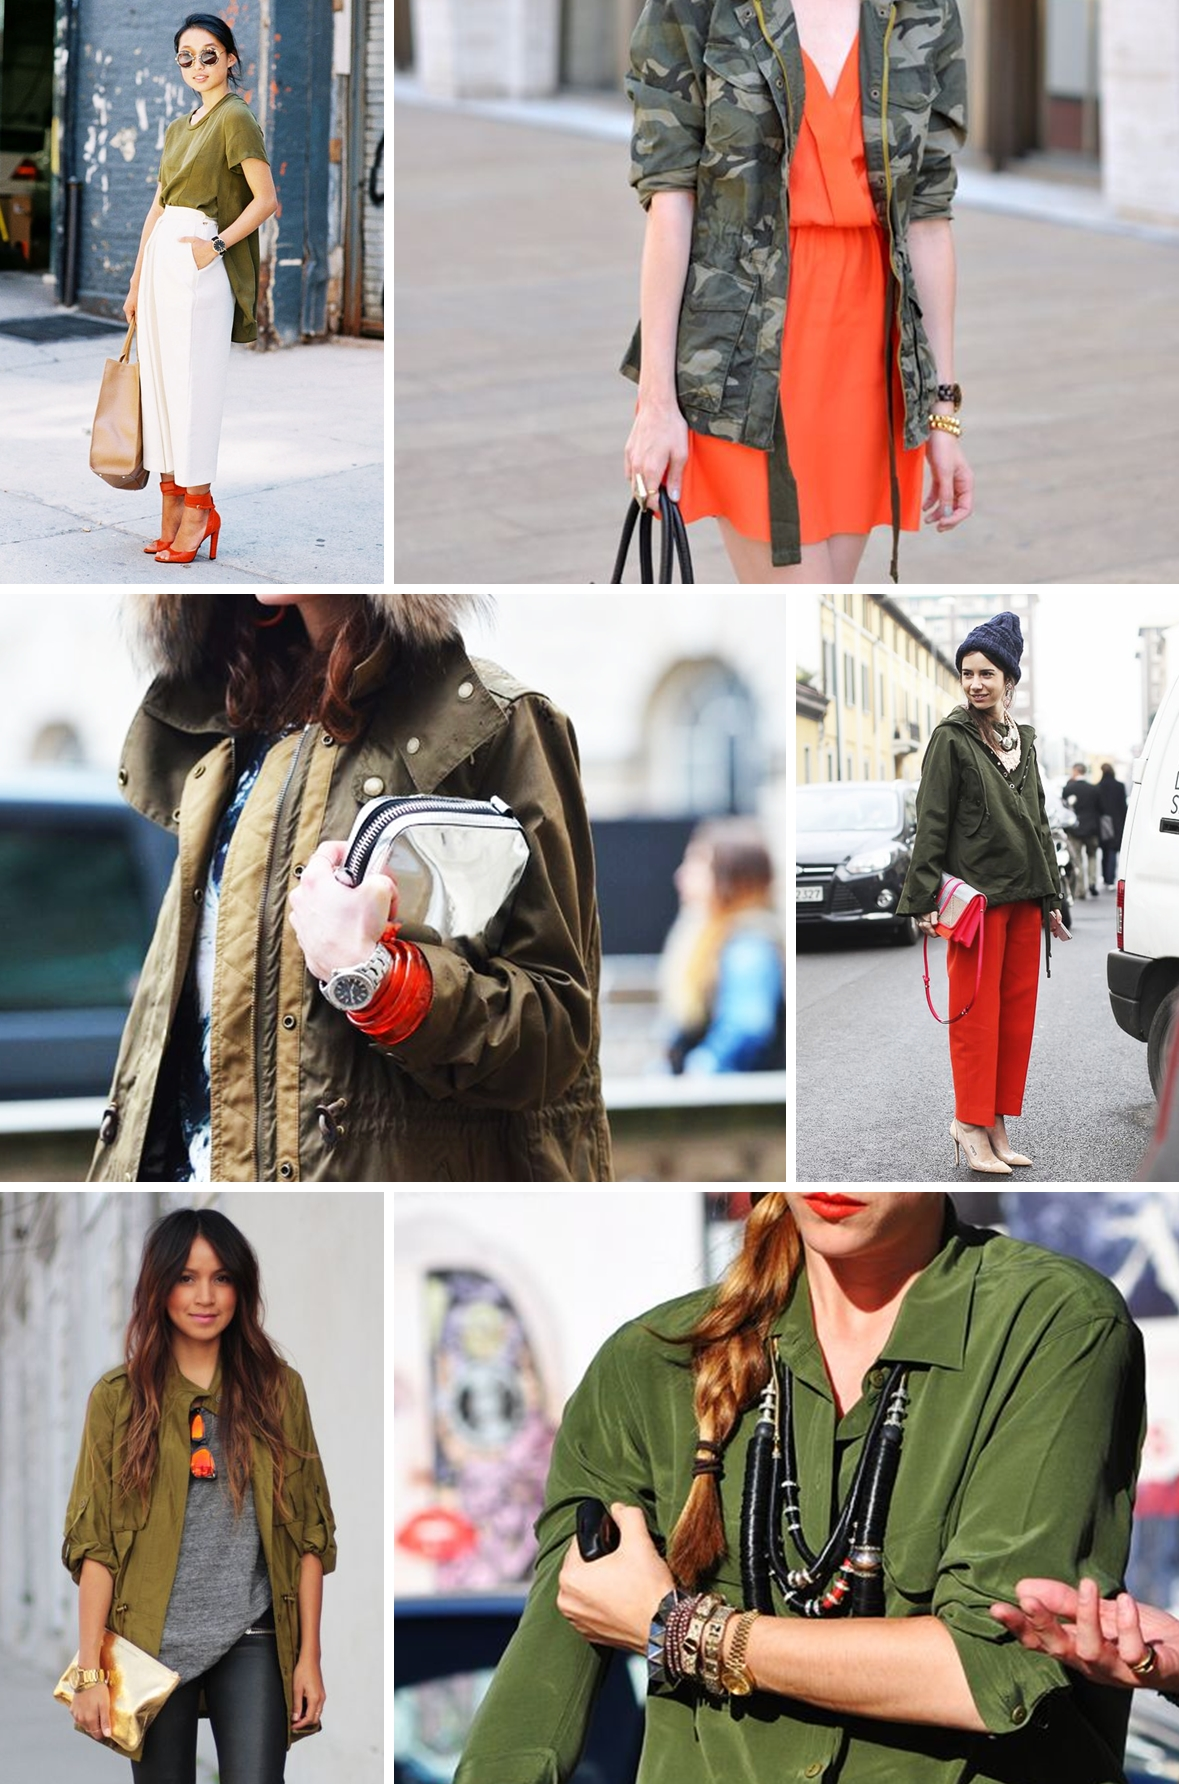 colours khaki and orange